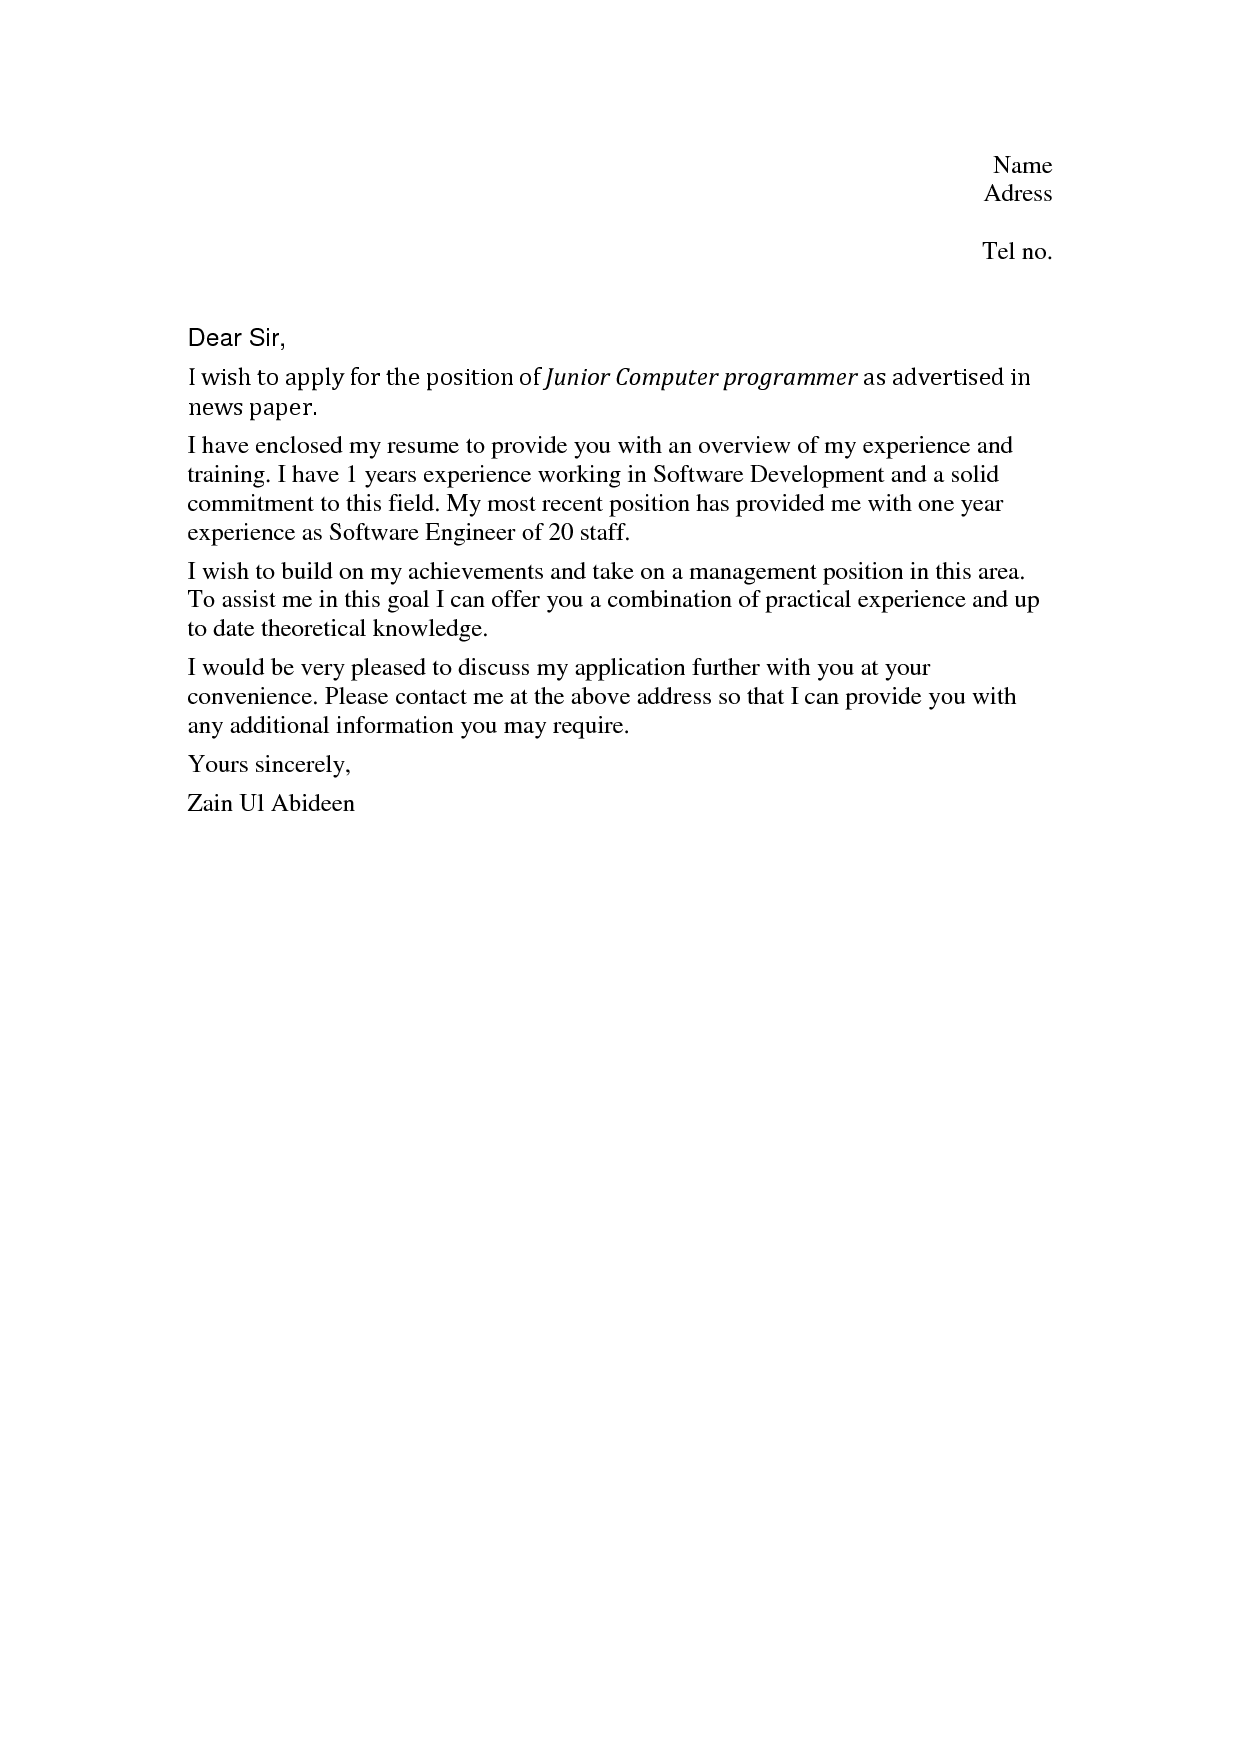 Cover Letter Sample No Work Experience Cover Letter SampleCover Letter Samples For Jobs